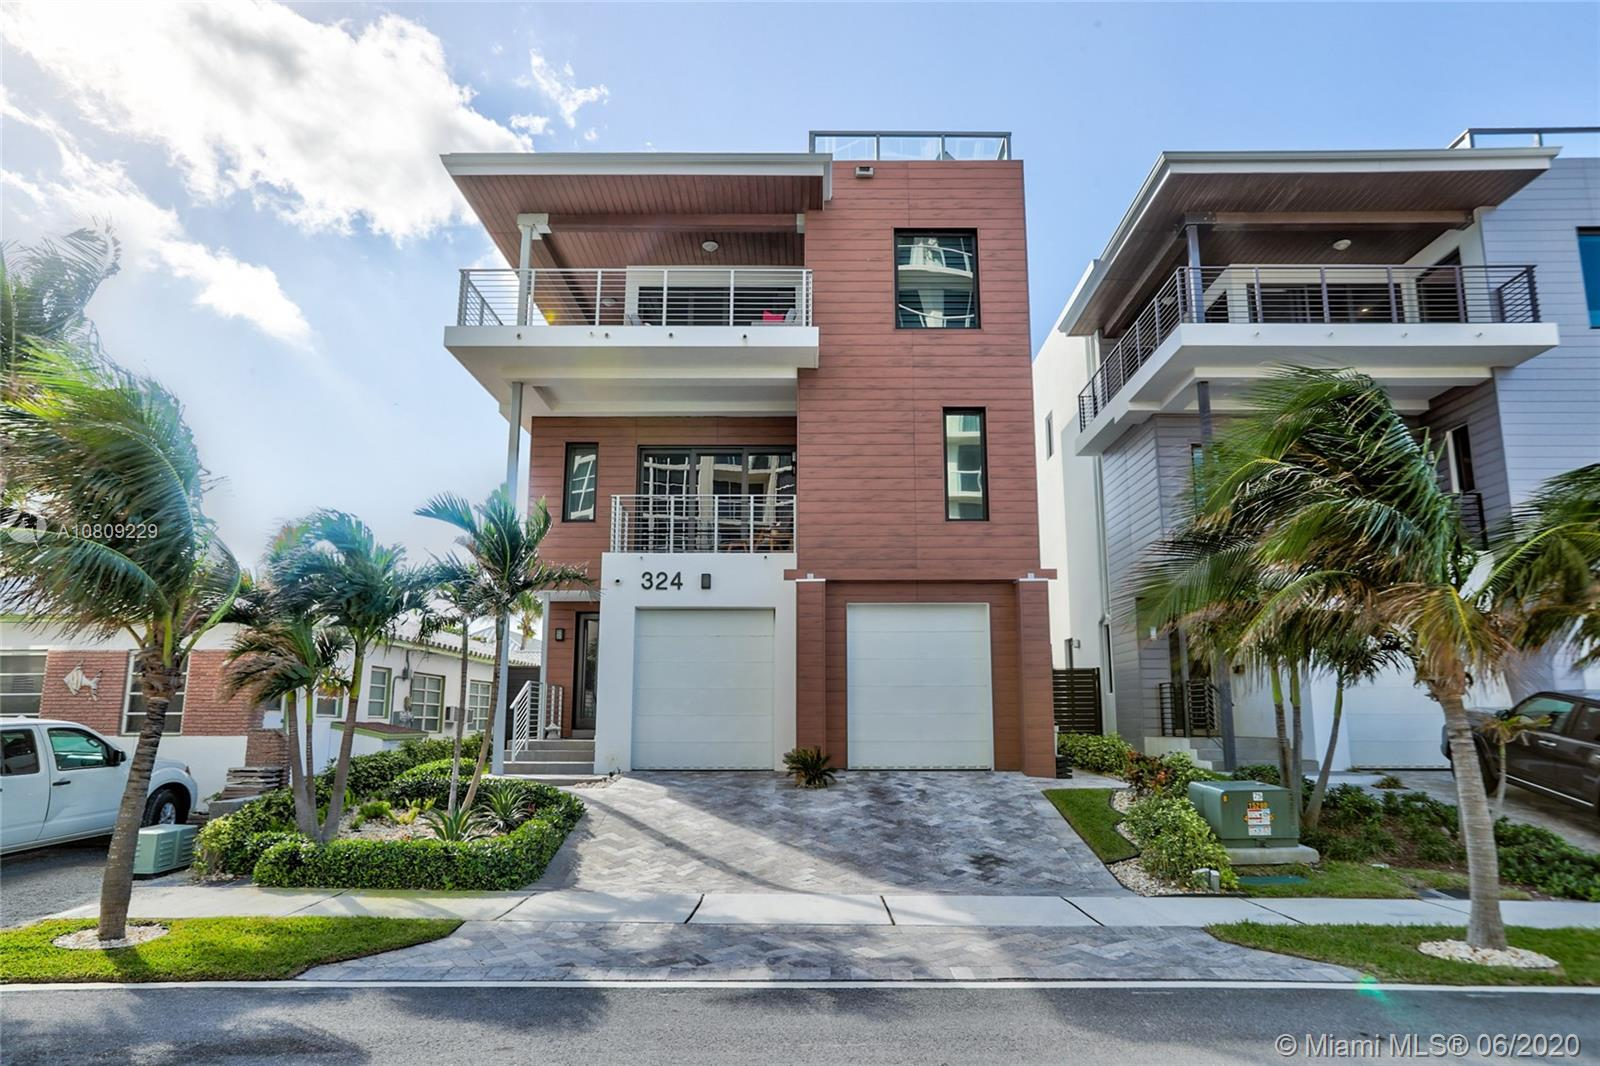 Make the beach your backyard!! Contemporary Modern Tri-Level beach home, DIRECT OCEAN VIEWS, steps from ocean, 3153 sq ft, 4 BR, 3.5 BA, Master Suite, his & her walk-in closets, beautiful en suite, stunning finishes, Armadi custom cabinetry in all closets, Hunter Douglas automated window treatments in all rooms, volume ceilings, Sonos sound system, integrated smart home features, 3rd level open floor plan showcases ocean views from floor to ceiling windows, Gourmet Kitchen, professional Sub Zero Refrigerator/Freezer, Thermador gas range/hood, Italian Venetta Cucina cabinetry, rooftop terrace w/ spectacular views of the Atlantic, summer kitchen, elevator access to all floors including rooftop, 2 car garage, close proximity to airport and interstate, this turn key home is move-in ready!!!